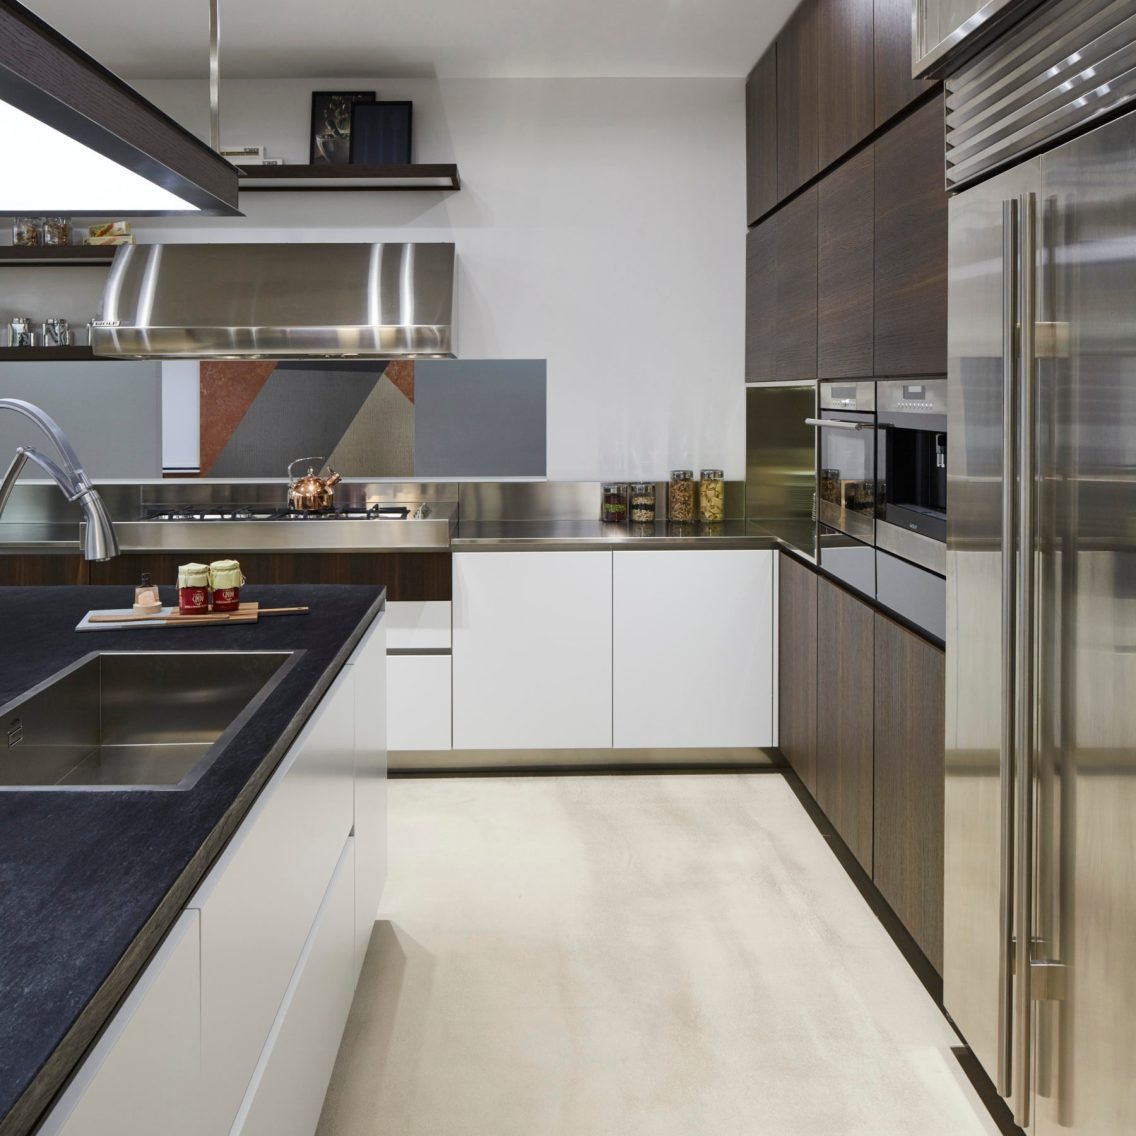 Spectrum Kitchens